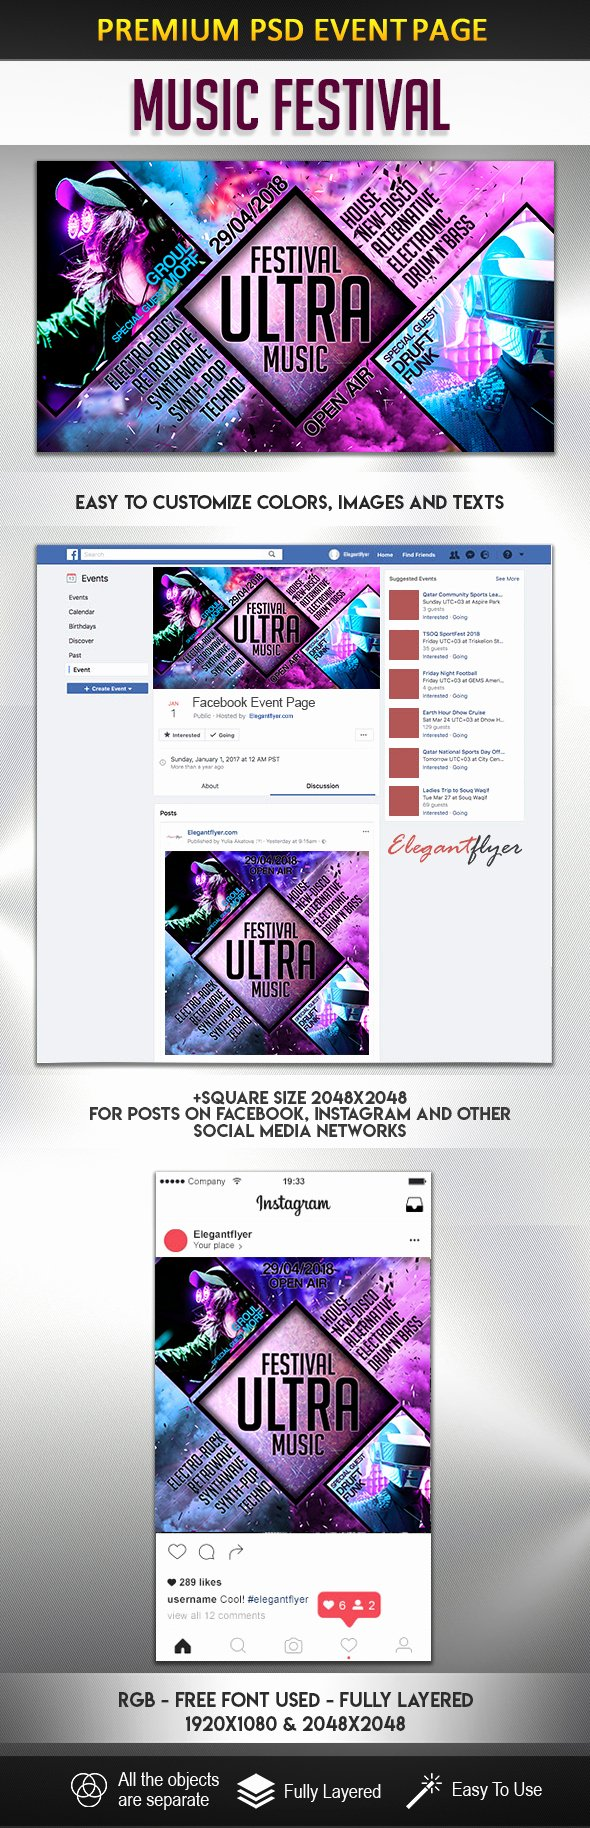 Facebook event Photo Template Lovely Music Festival – event Instagram Template – by